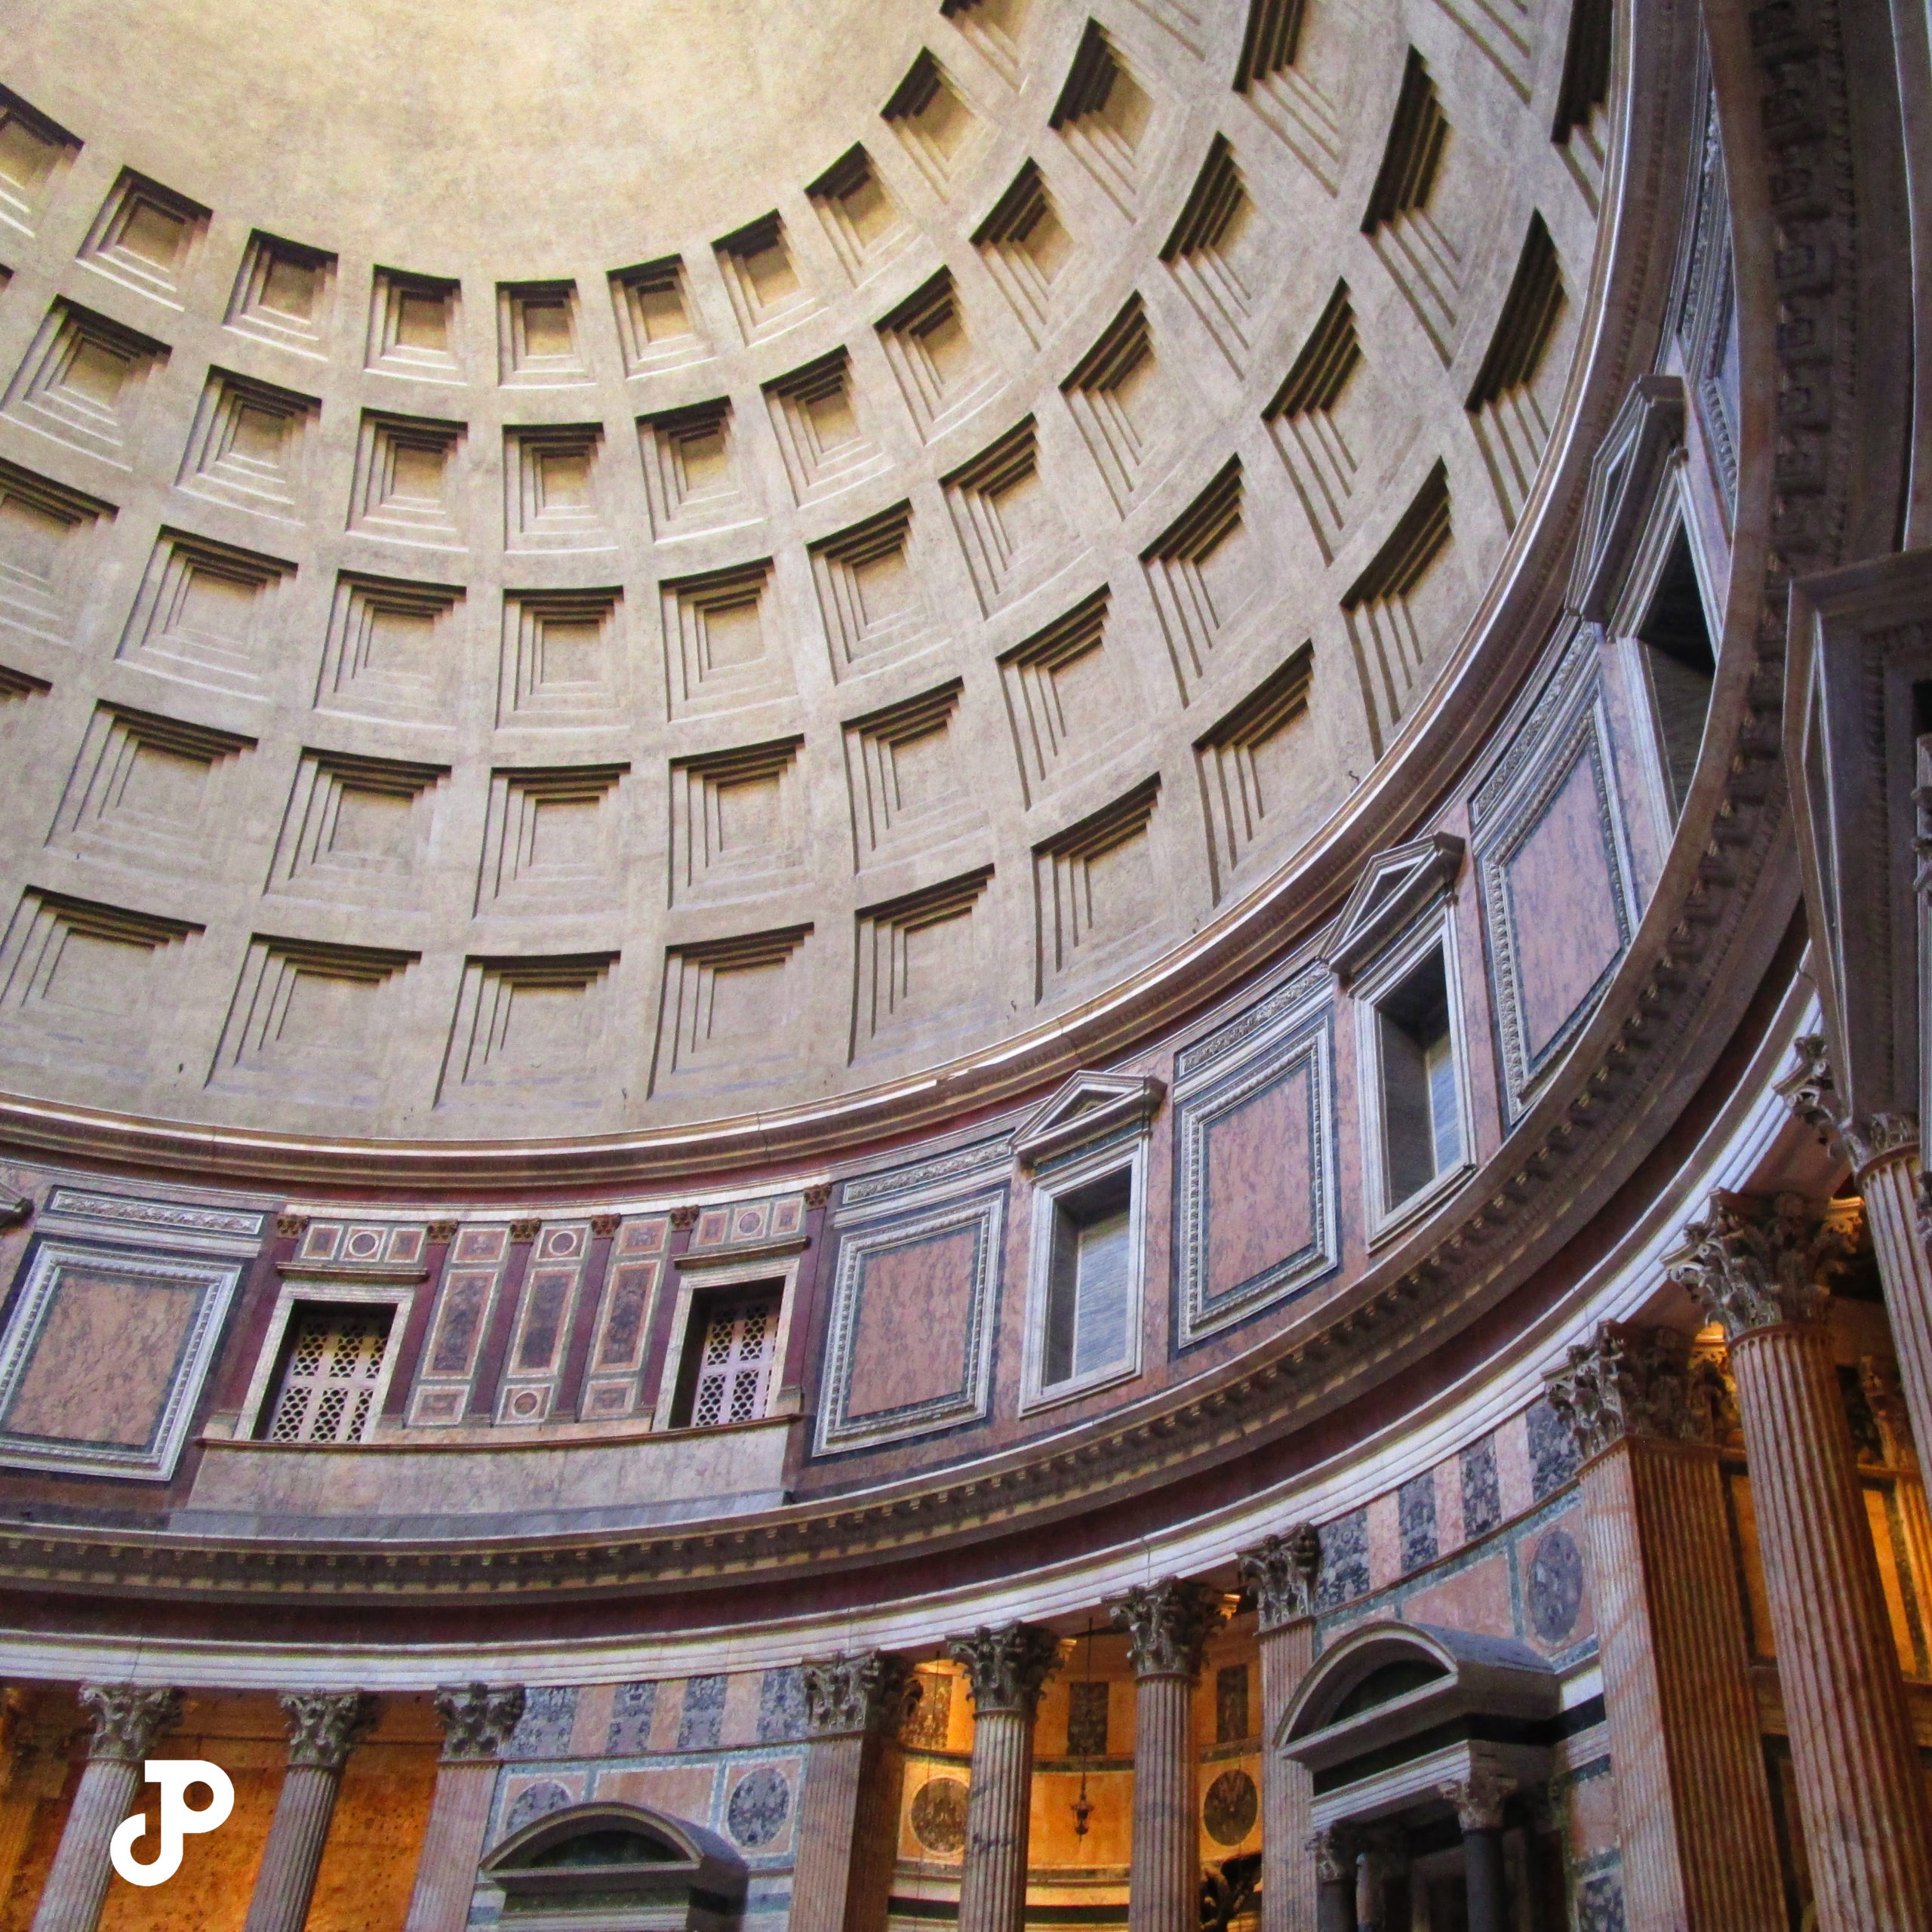 the ornate dome inside the Pantheon